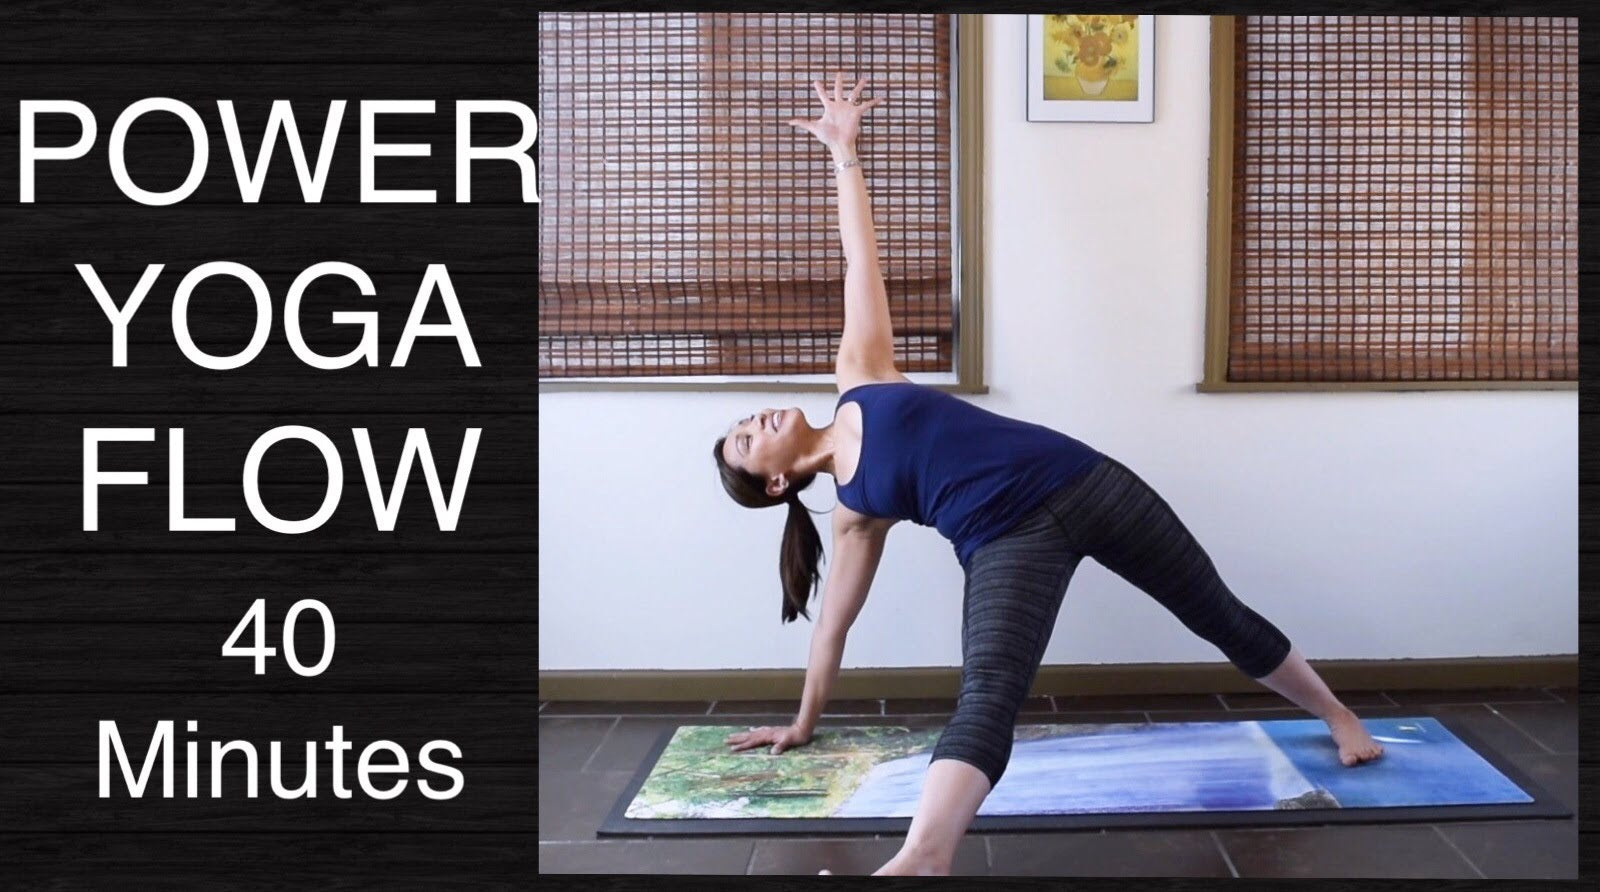 Power Vinyasa Flow Yoga Class  - 40 Minutes (Intermediate)